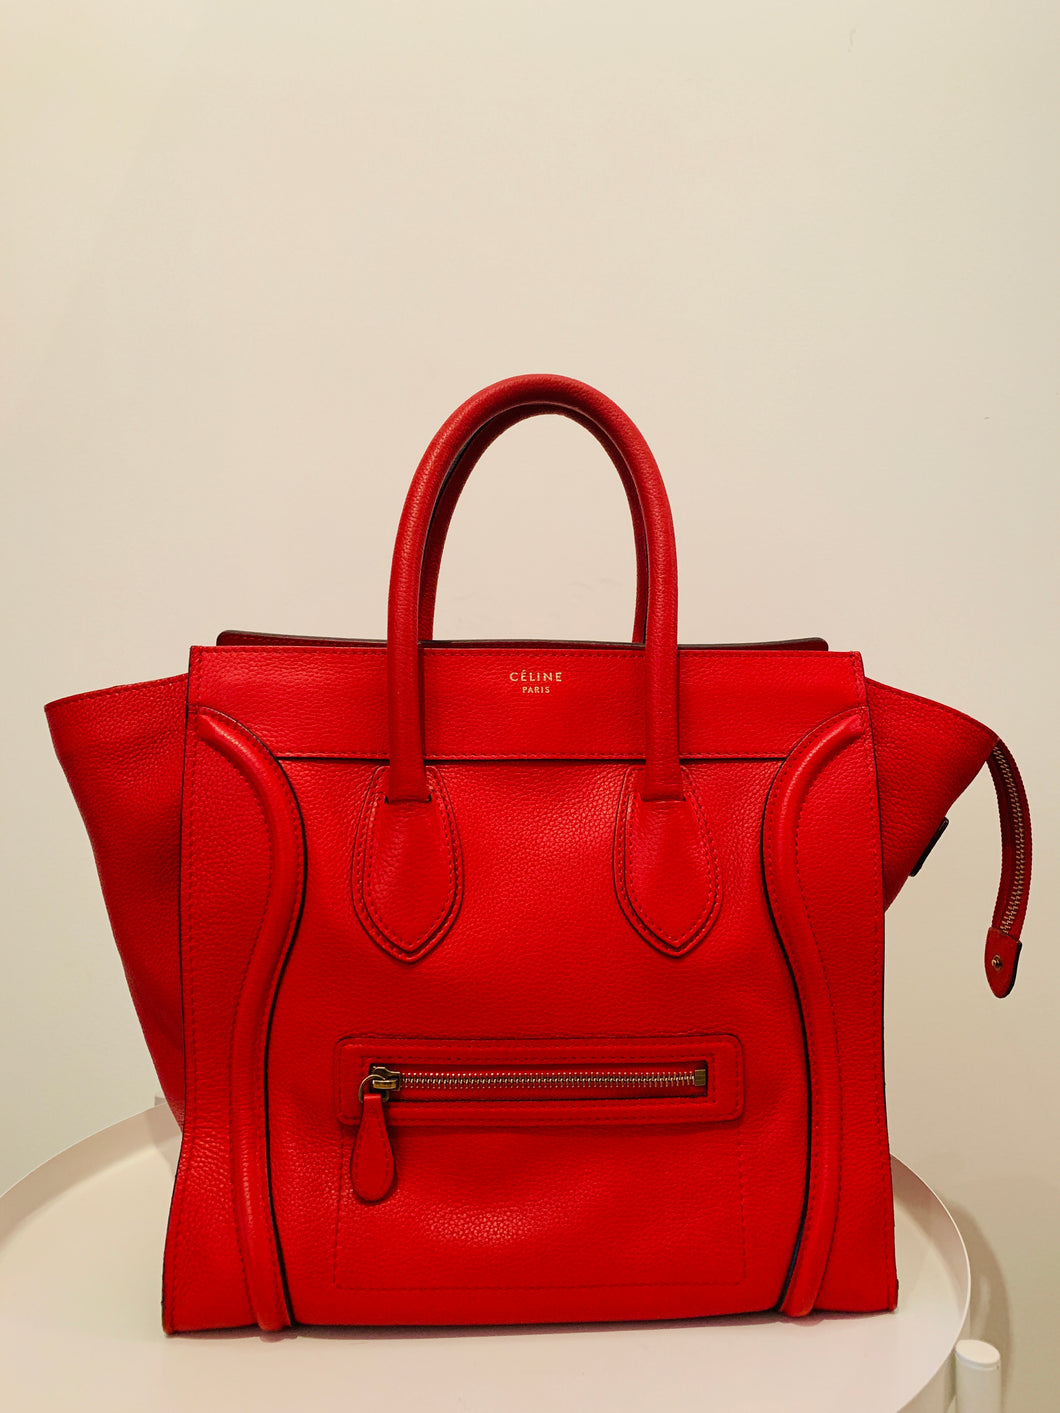 Céline Red Leather Mini Luggage tote